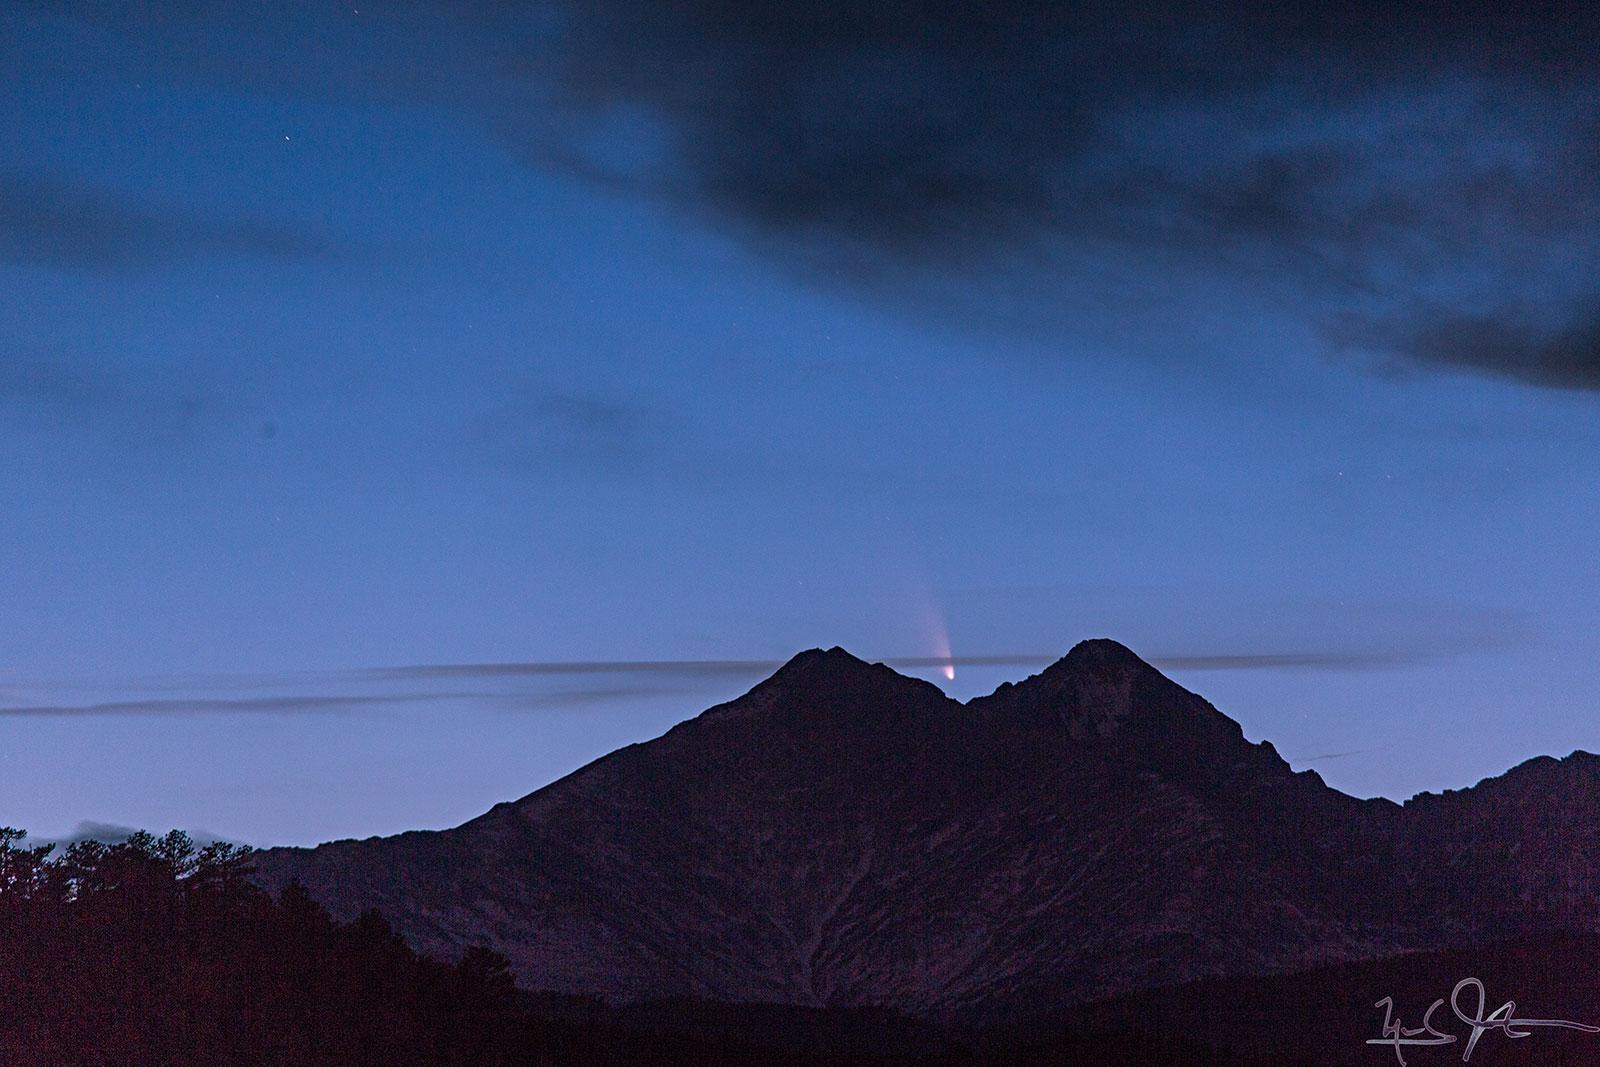 Comet C/2011 L4 Pan-STARRS drops into the notch between Mt. Meeker and Long's Peak from a viewpoint in Lyons, Colorado.